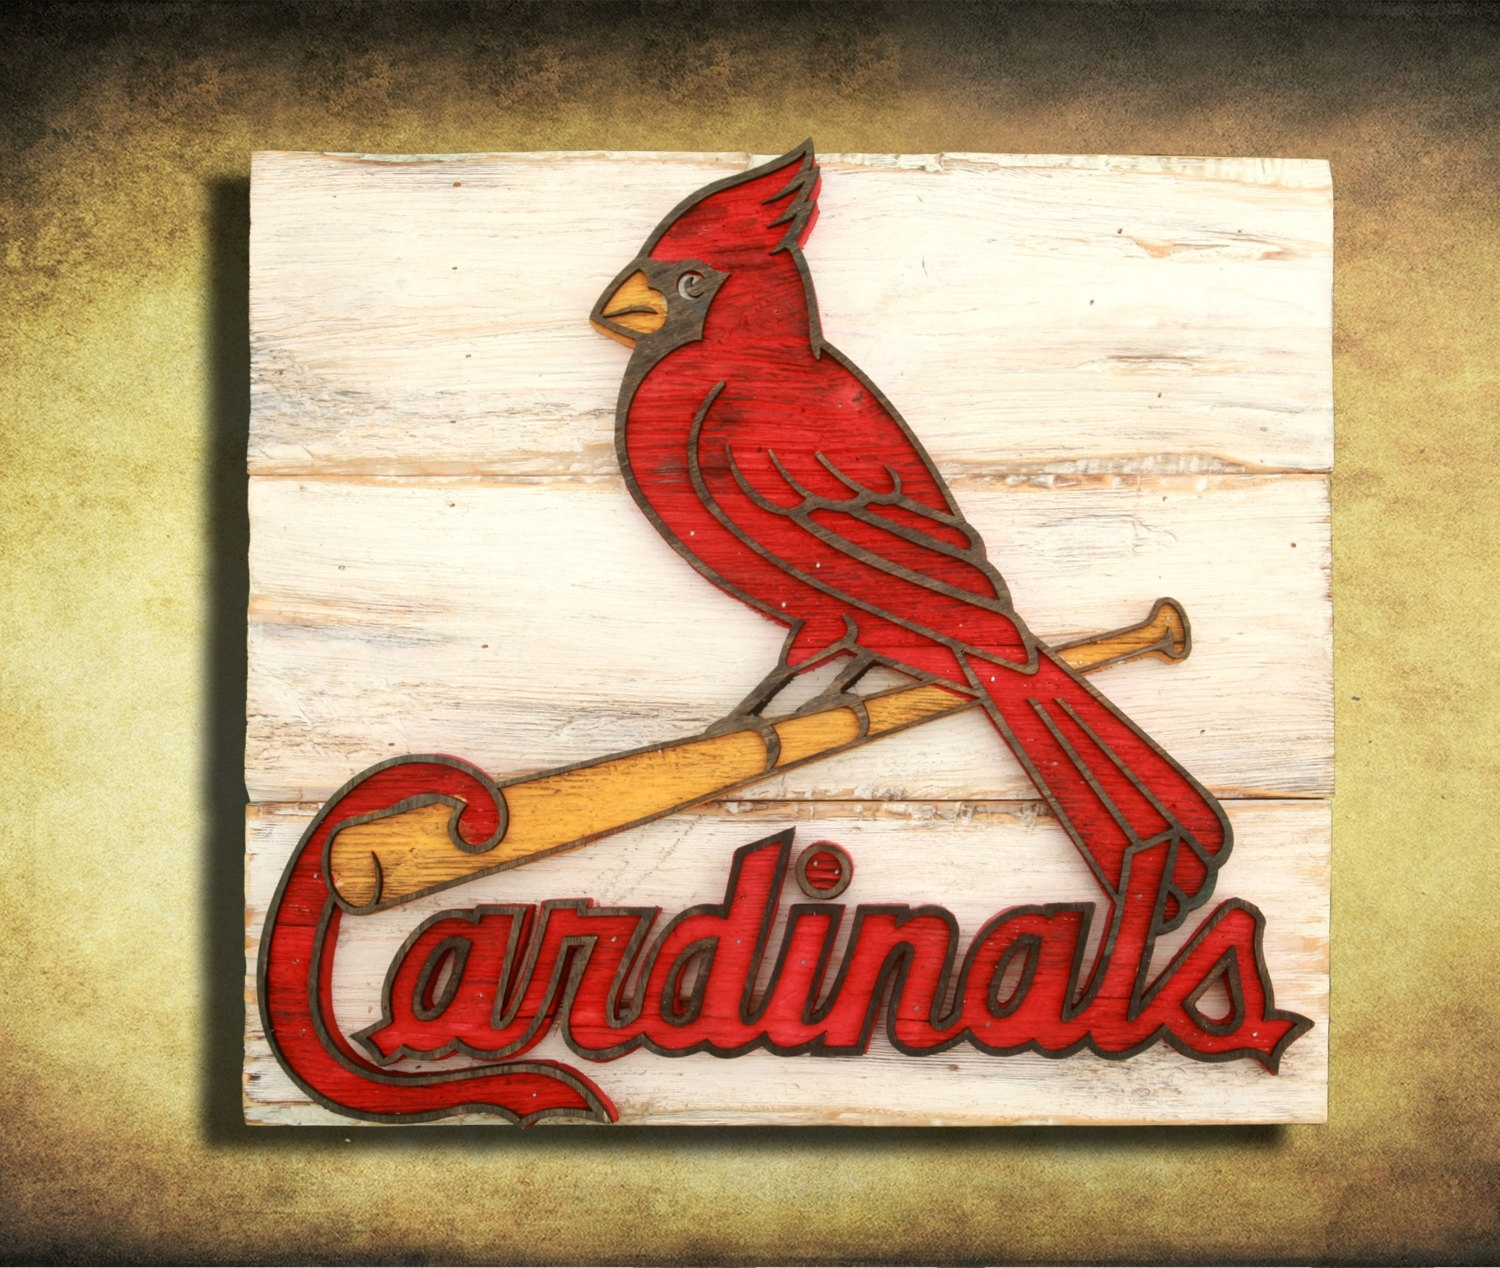 Saint Louis Cardinals Handmade Distressed Wood Sign, Vintage, Art Intended For 2017 Baseball Wall Art (View 17 of 20)